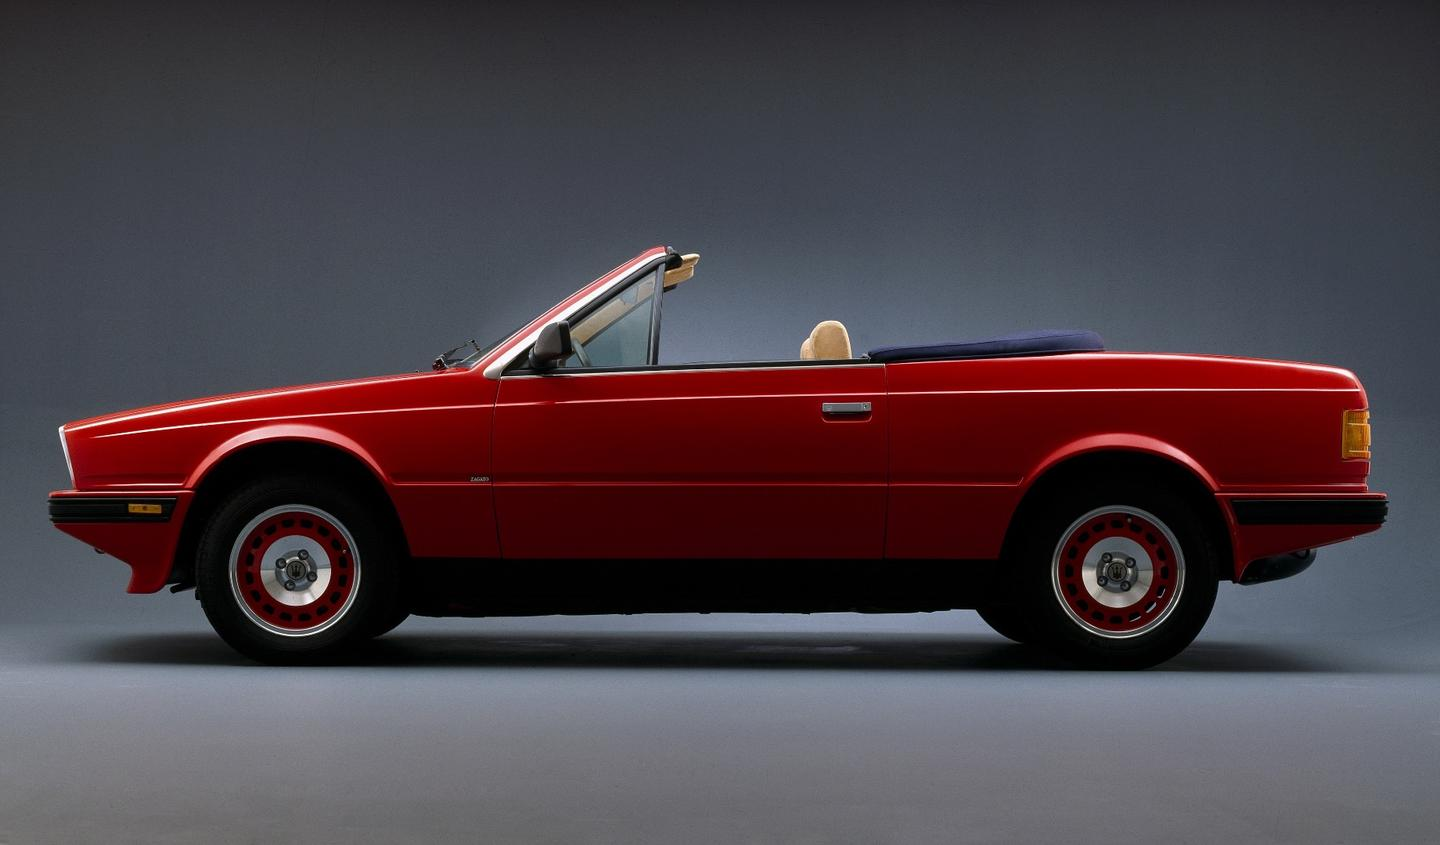 The 1984 Maserati Biturbo Spyder was powered by a 2.0-liter twin-turbo six-cylinder engine